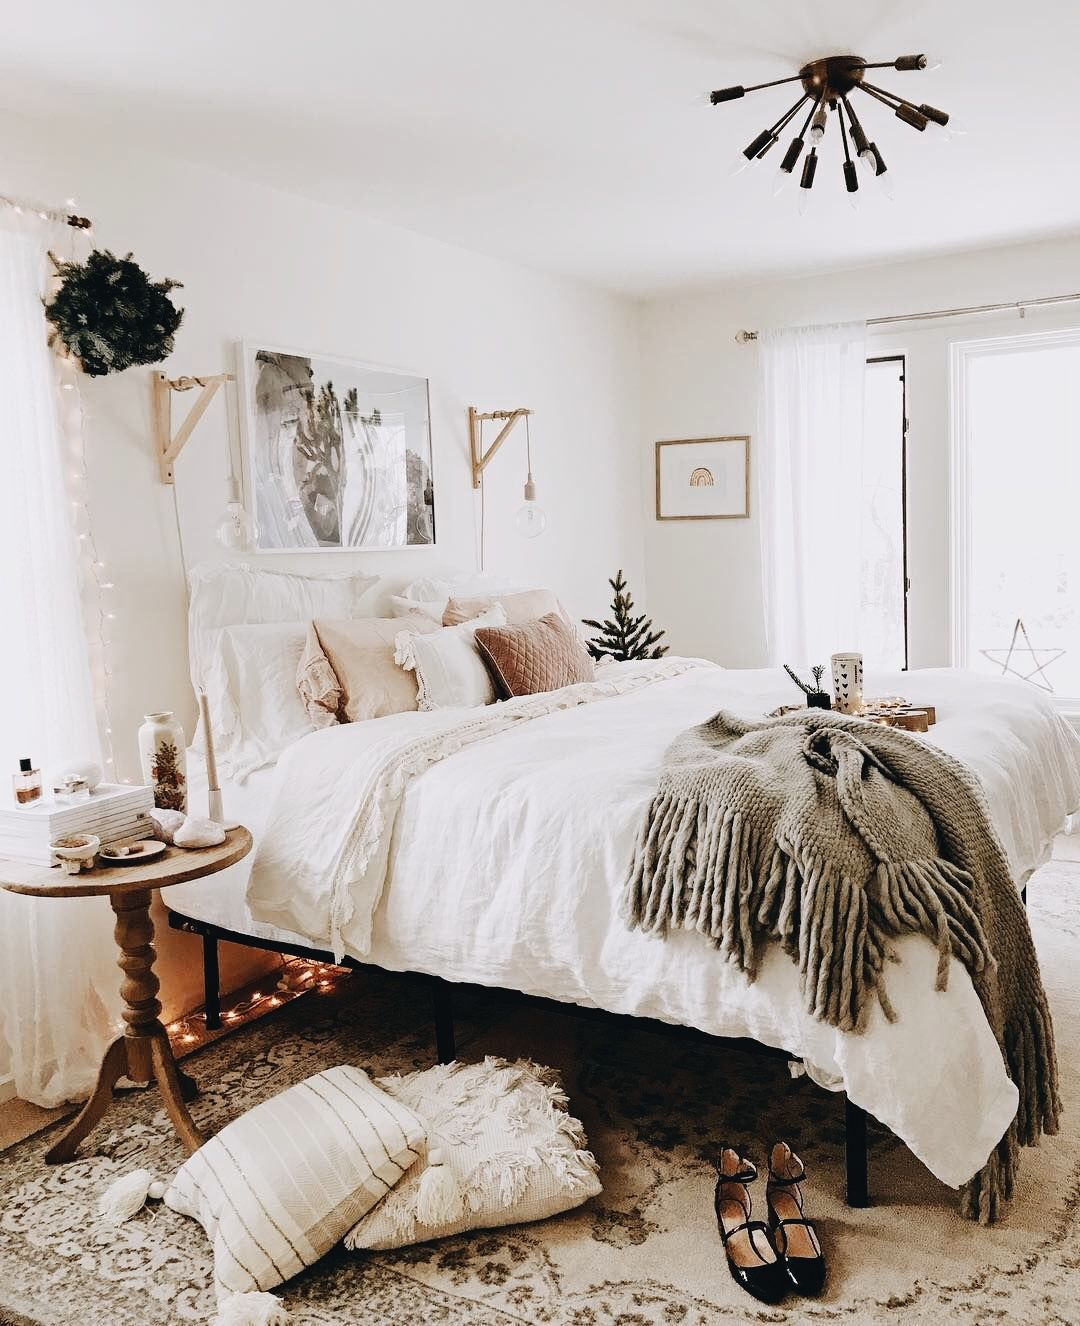 Pin By Right Side Of Twenty Mid Twe On Interior Home Decor Bedroom Beautiful Bedroom Decor Home Decor